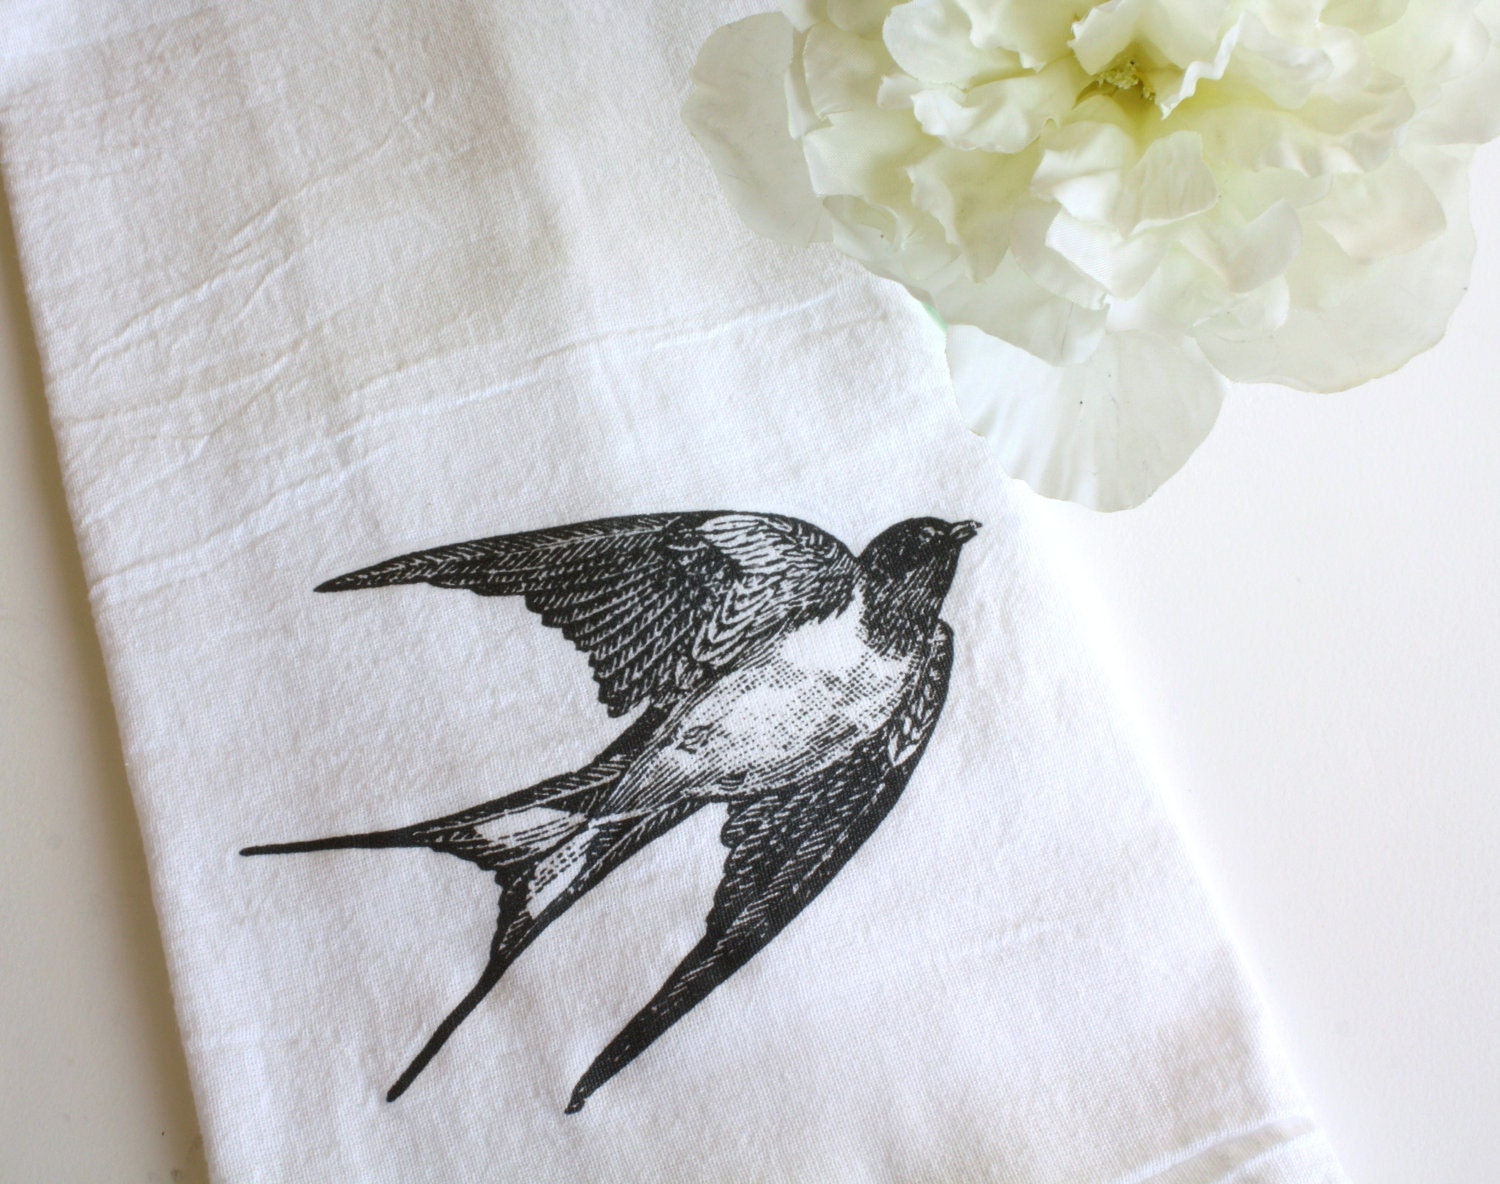 Mothers Day Gift, Flour Sack Towel, Cotton, Kitchen Towel,  Gift, Housewarming Gift, Swallow Bird, Home - AppleWhite